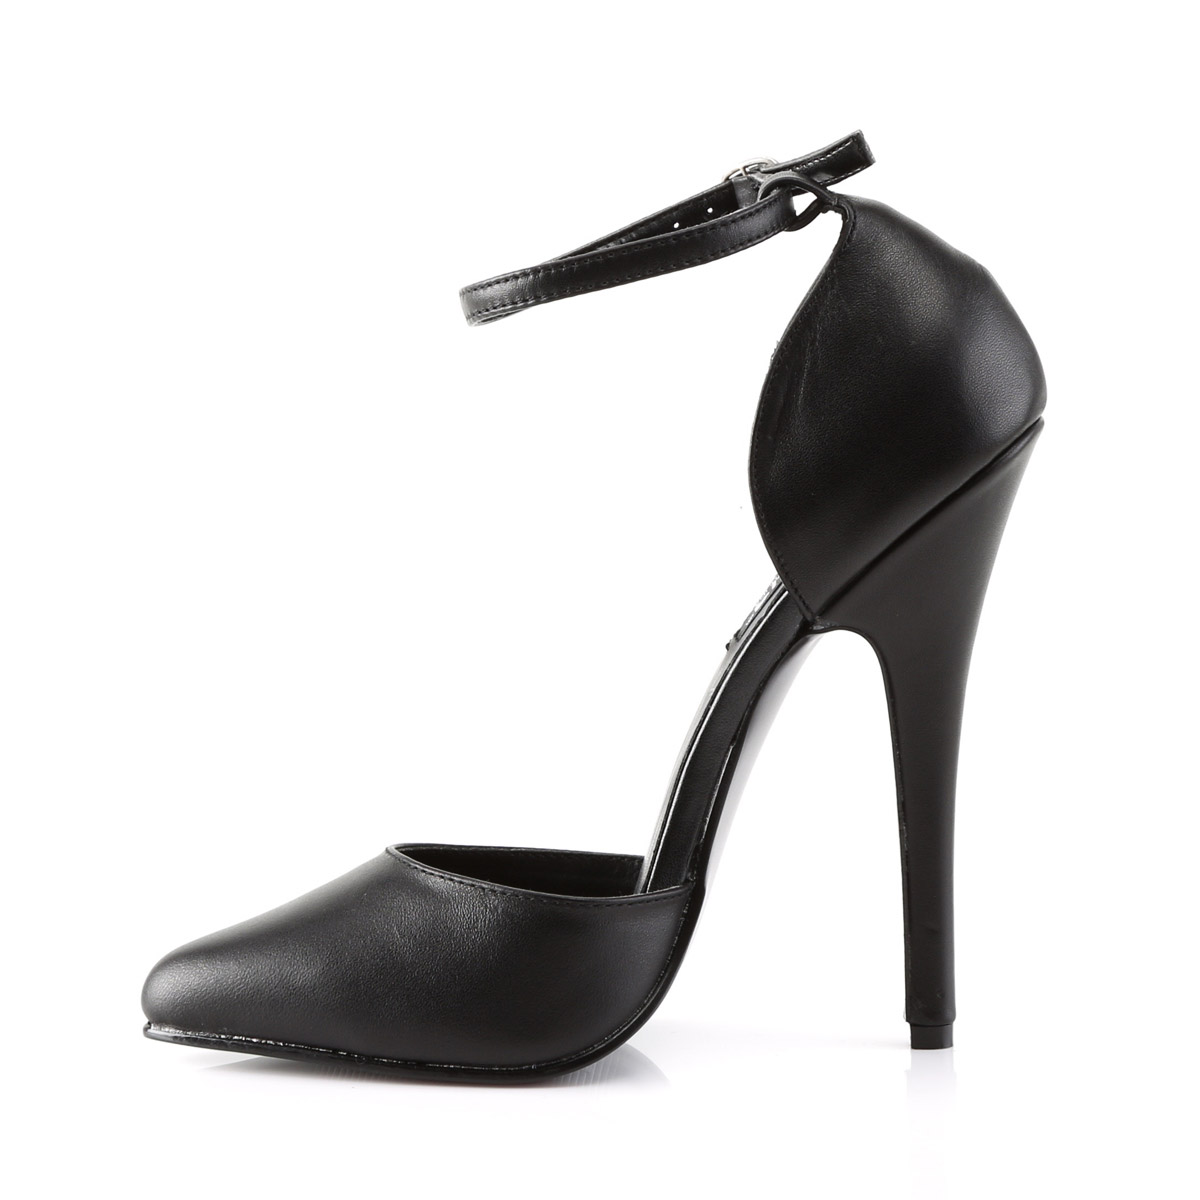 thumbnail 5 - Pleaser Devious Pointed Toe Ankle Strap D'Orsay Pumps Stiletto High Heels